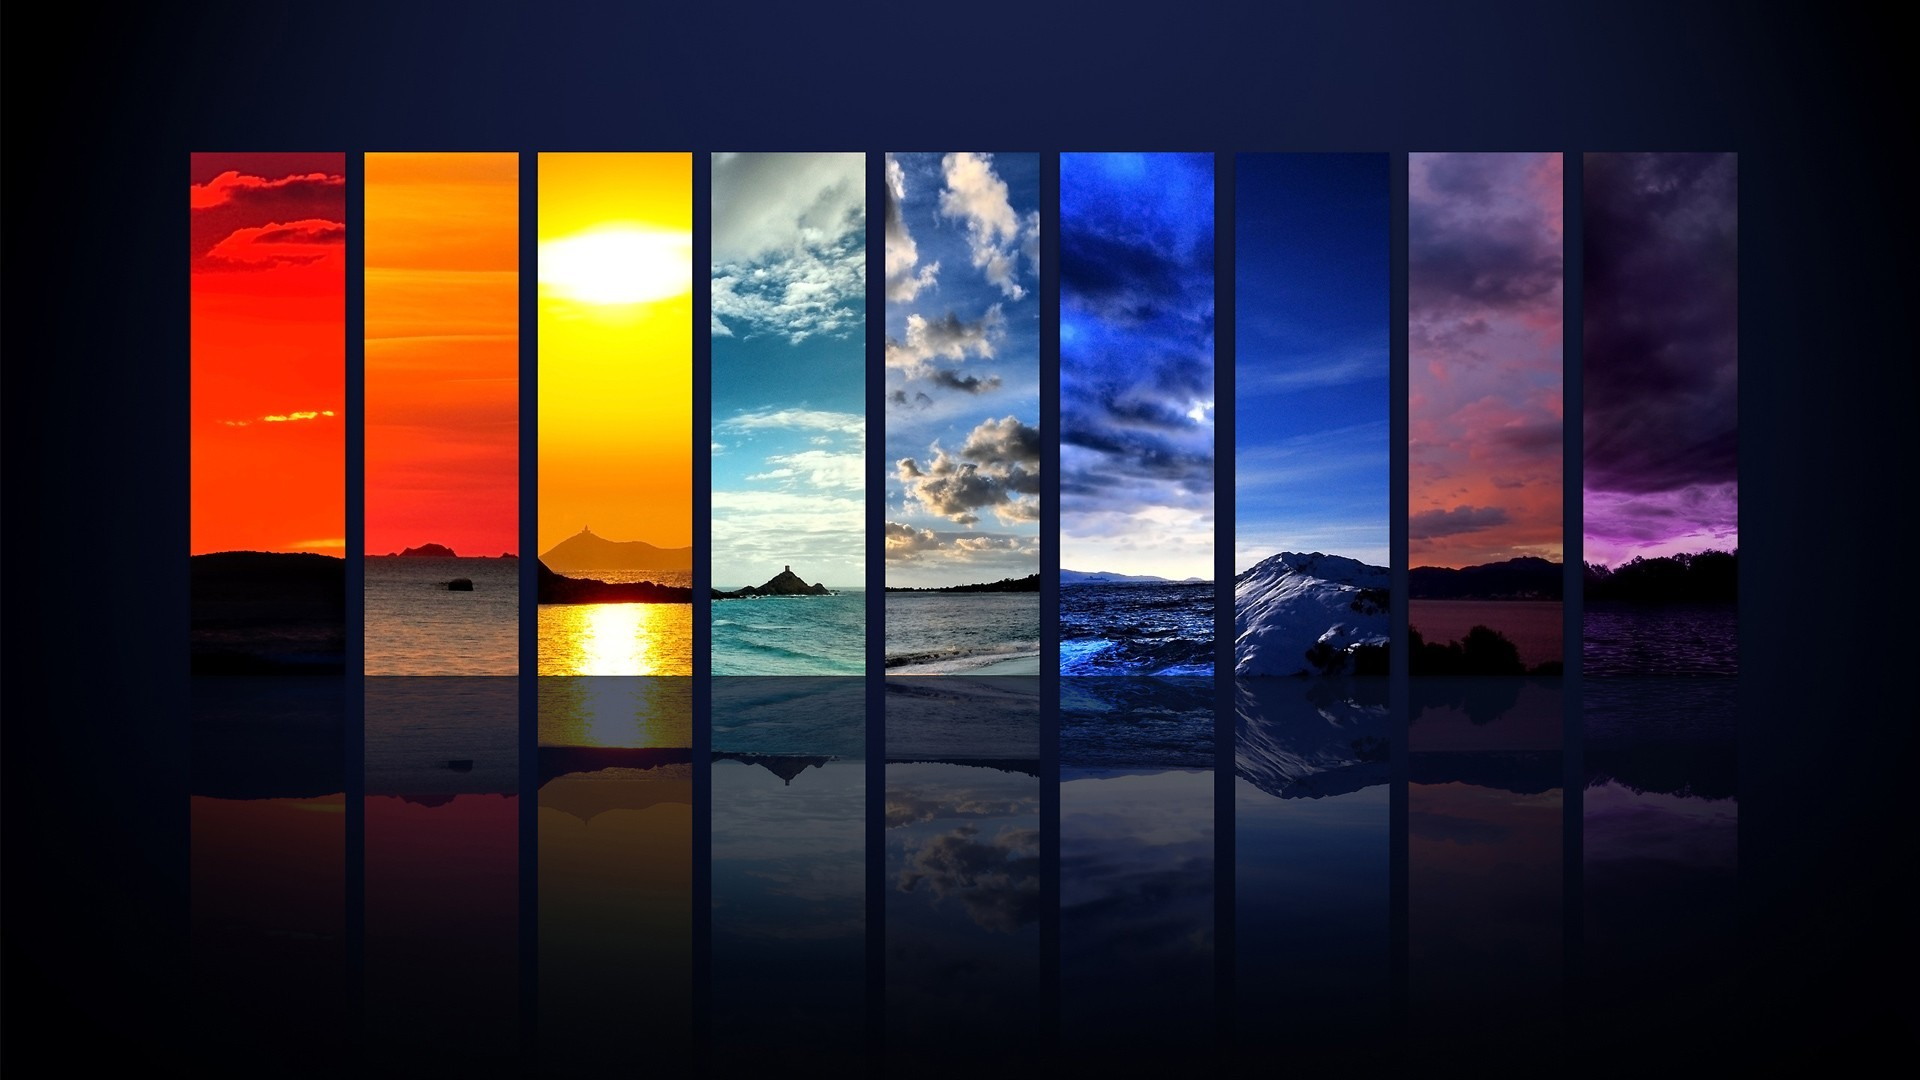 Background Computer Wallpaper 68 Images